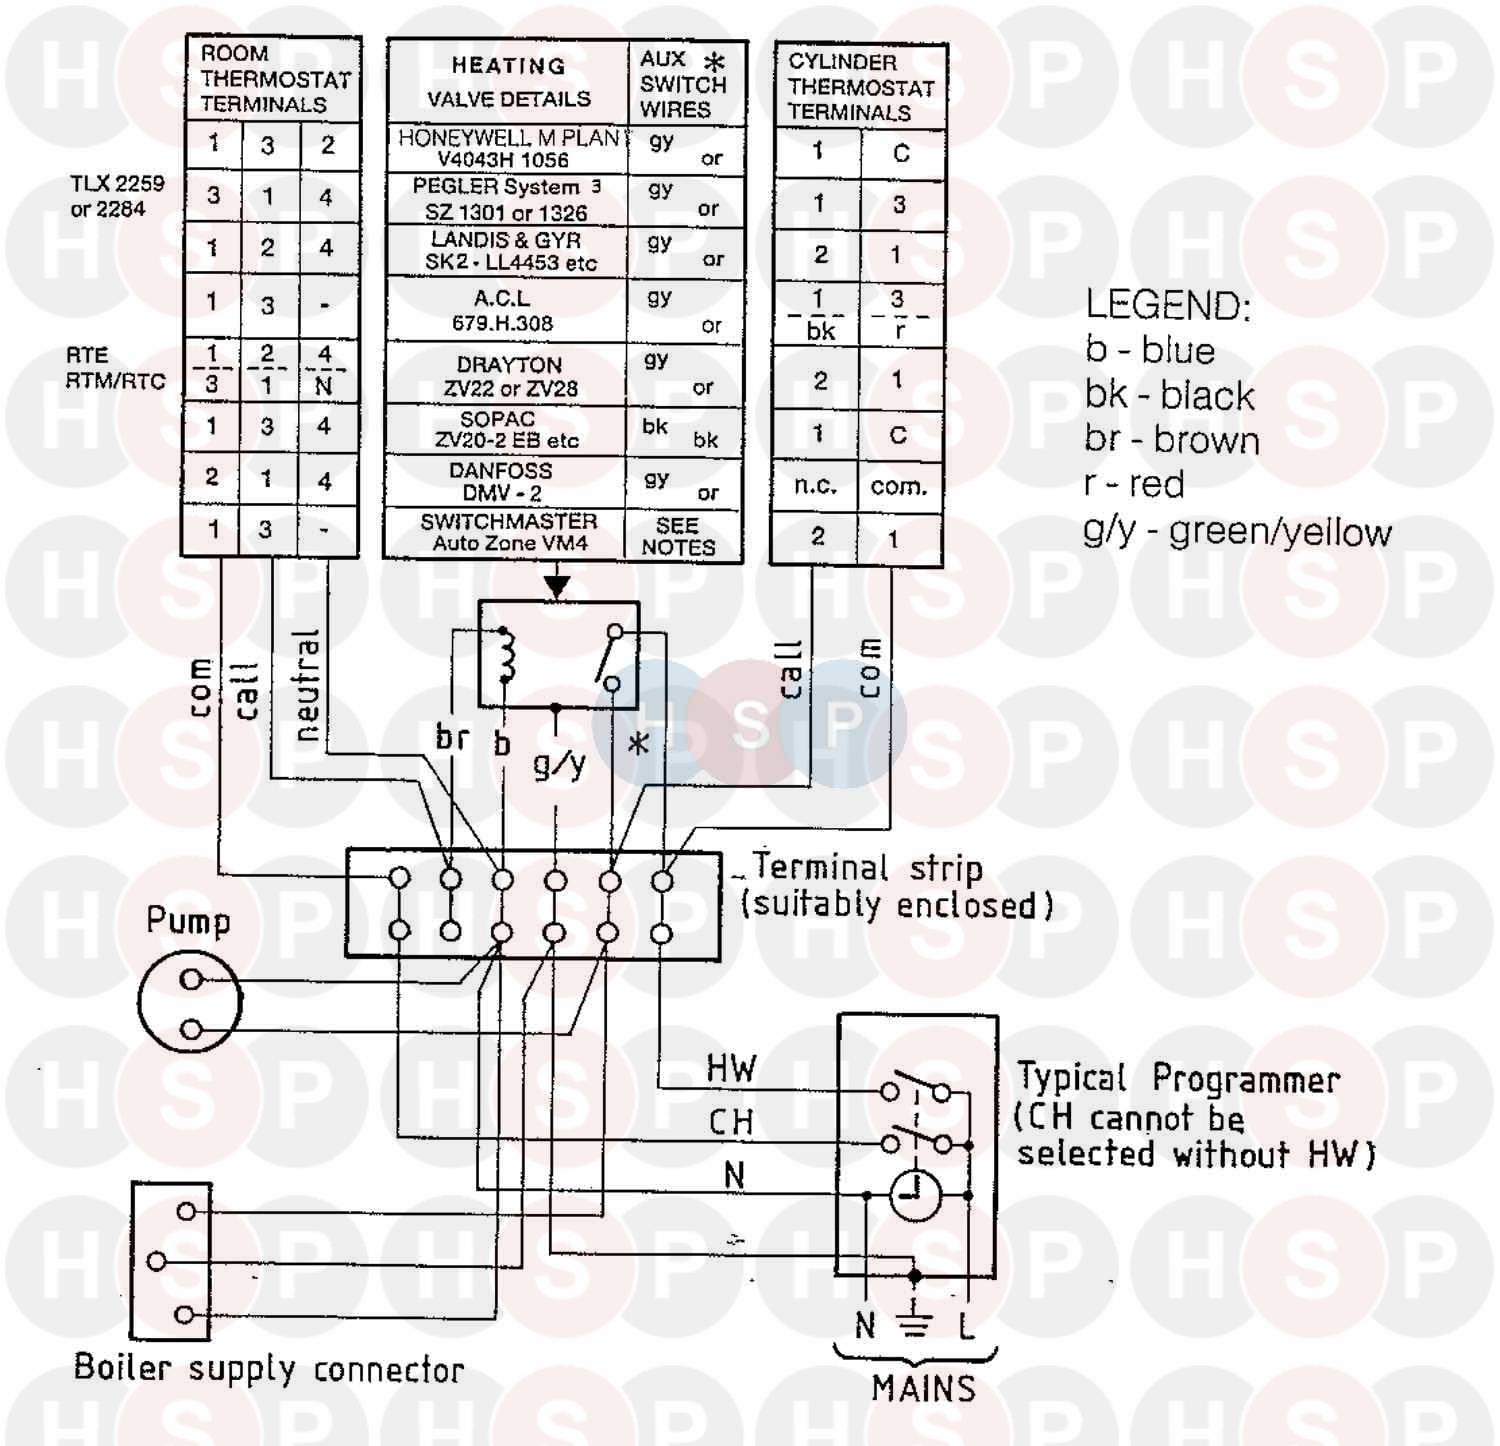 Ideal elan 2 30nf appliance diagram wiring diagram 4 heating click the diagram to open it on a new page asfbconference2016 Gallery